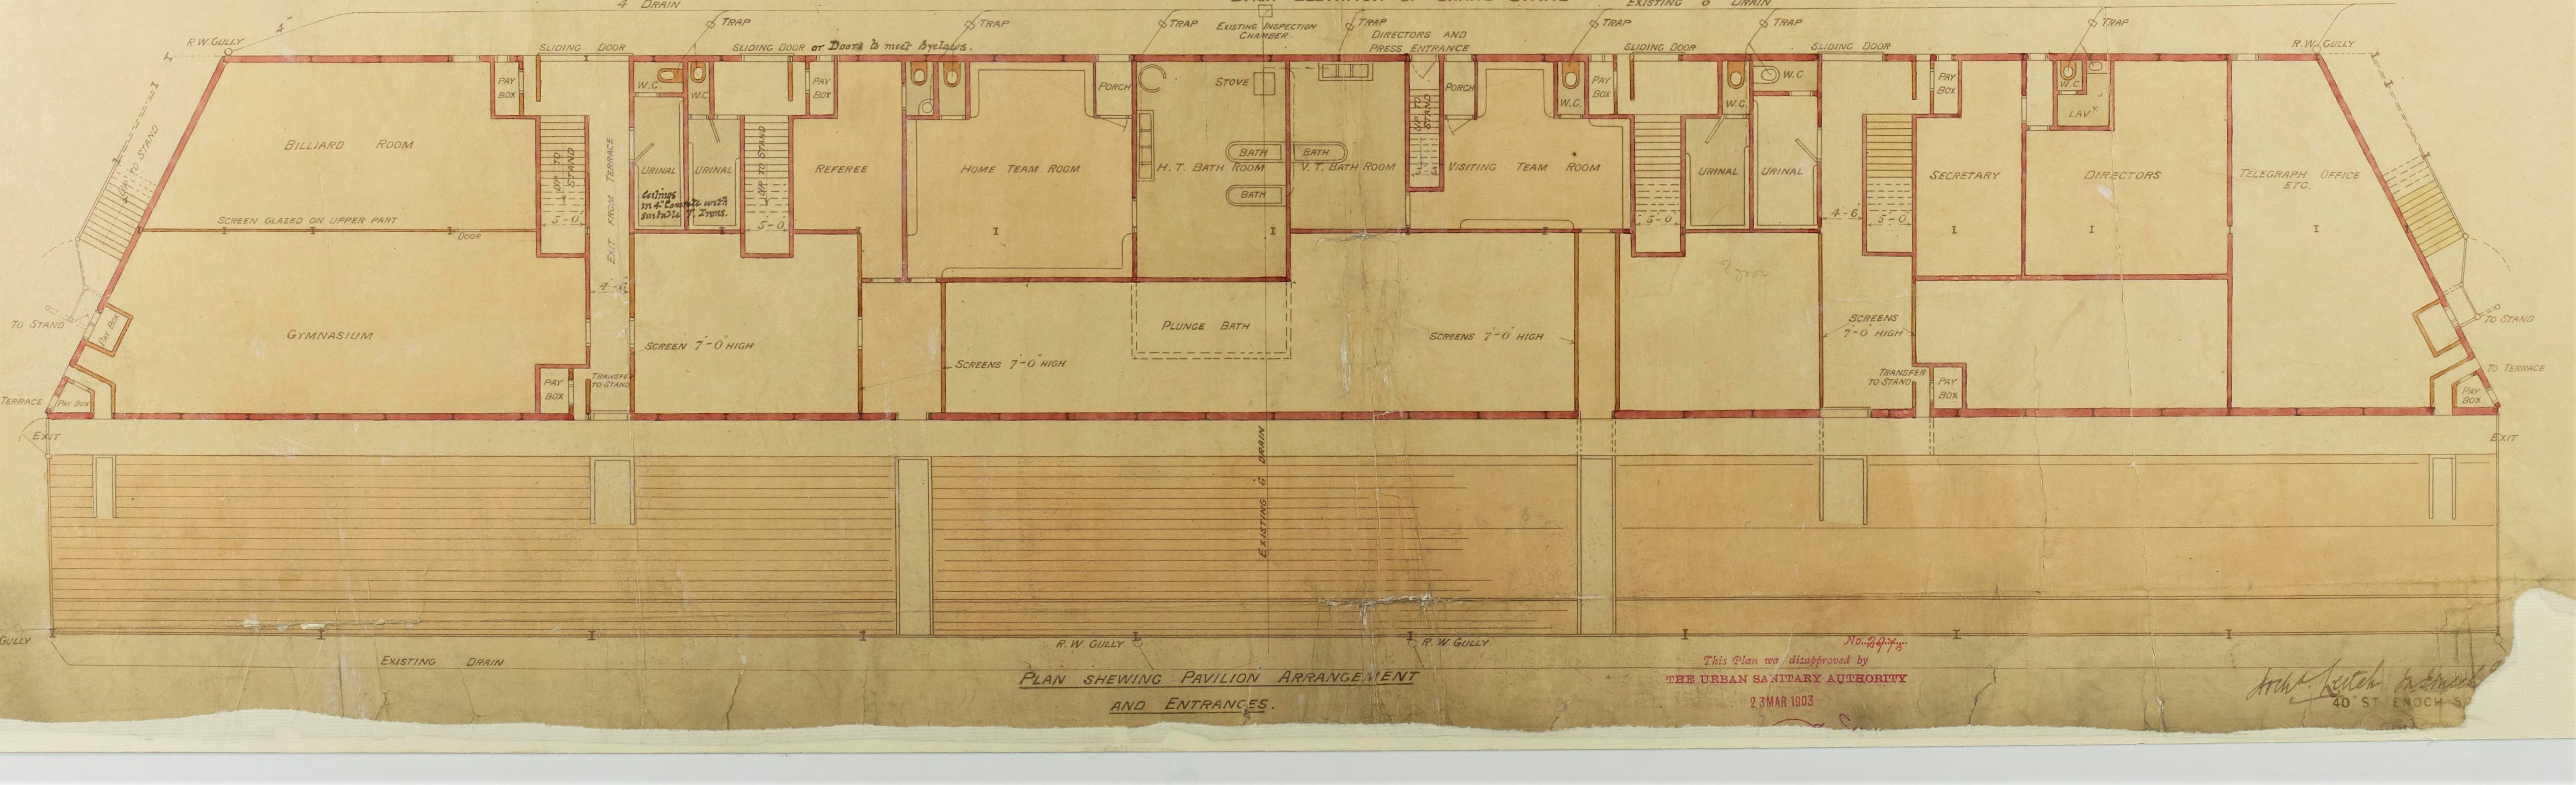 The plan of the new Grand Stand at Ayresome Park details facilities including changing rooms plunge baths referees room and visitor facilities